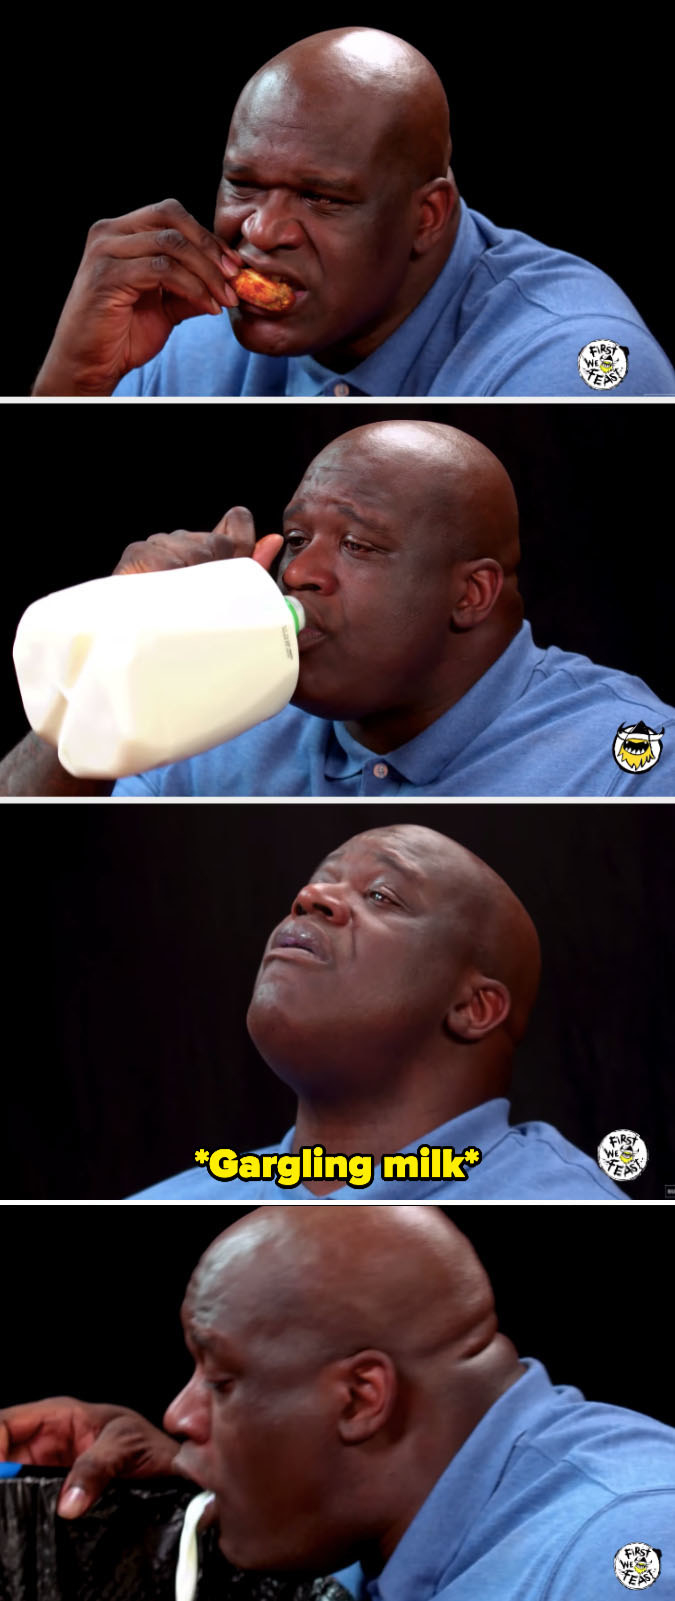 Shaq drinking, gargling, and spitting out milk